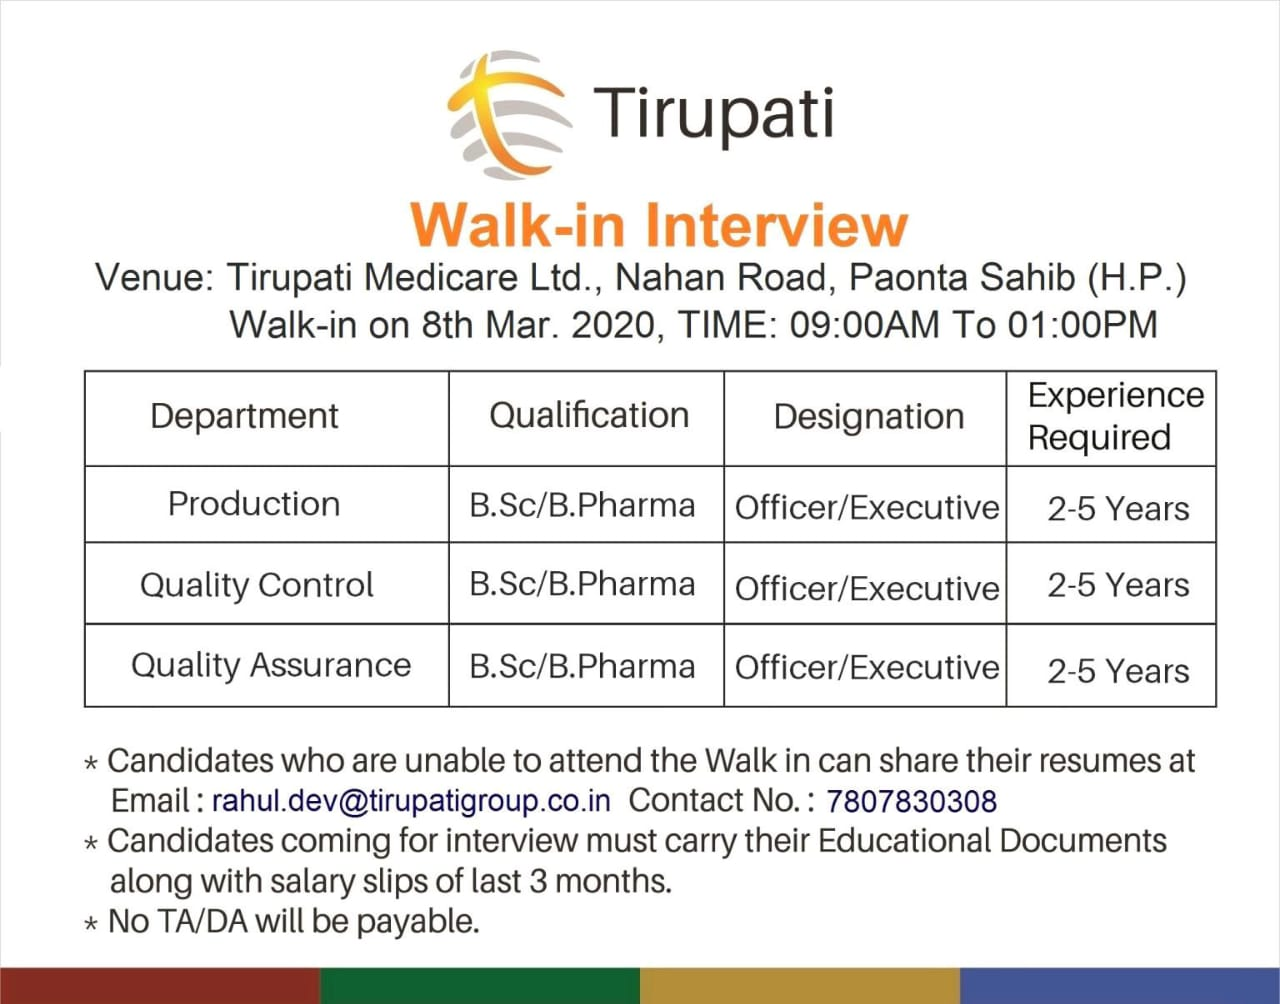 Tirupati Medicare Ltd – Walk in interview for Production, Quality Control, Quality Assurance on 8th March 2020